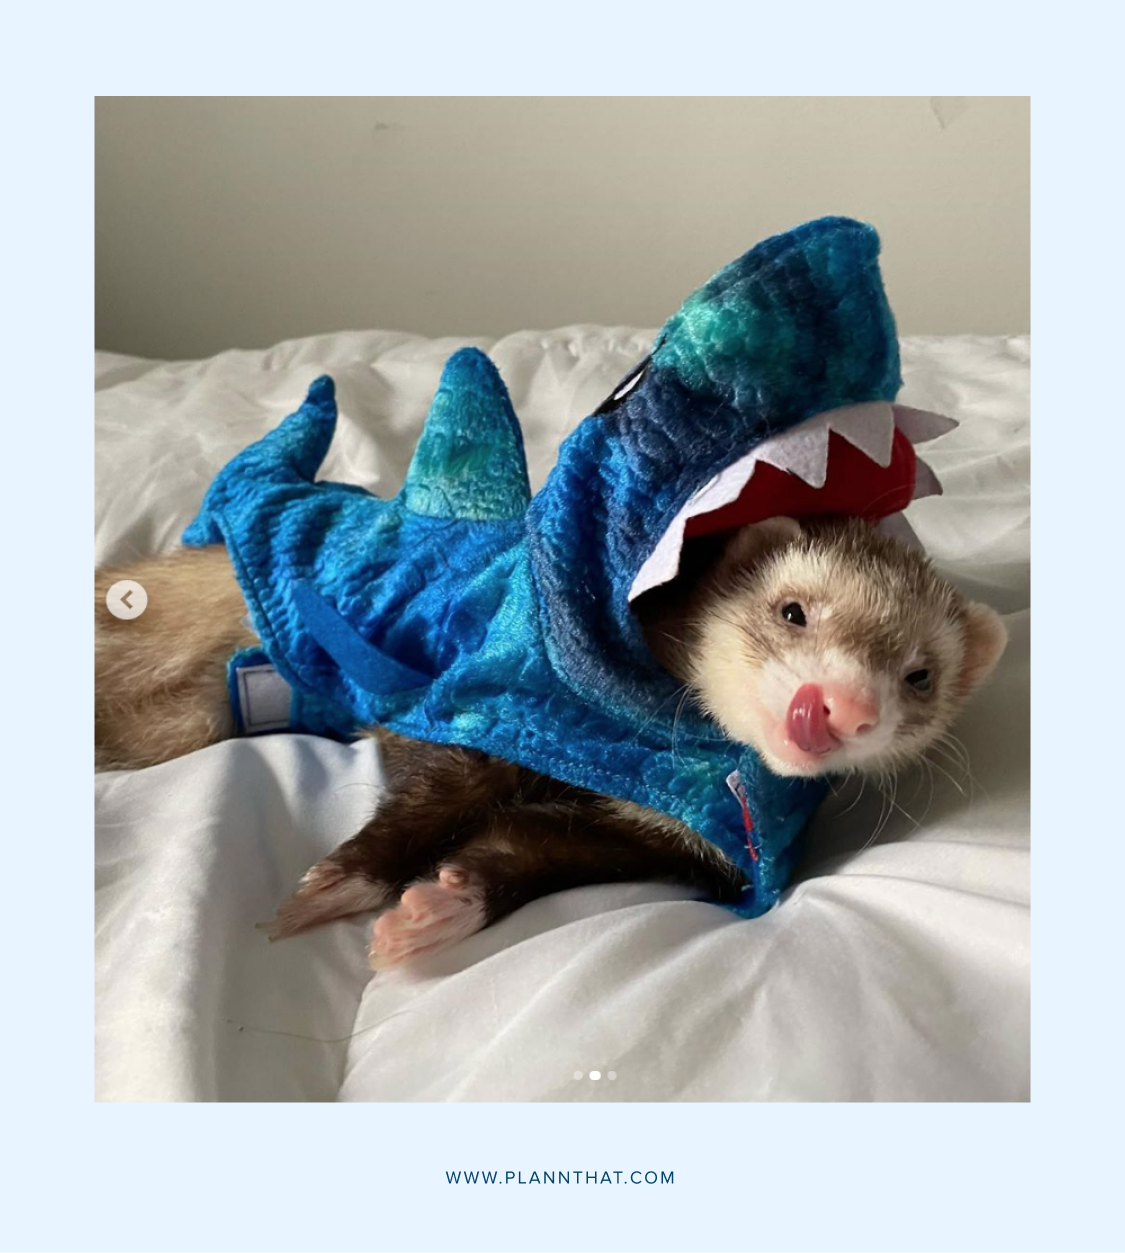 Post your pet in a costume